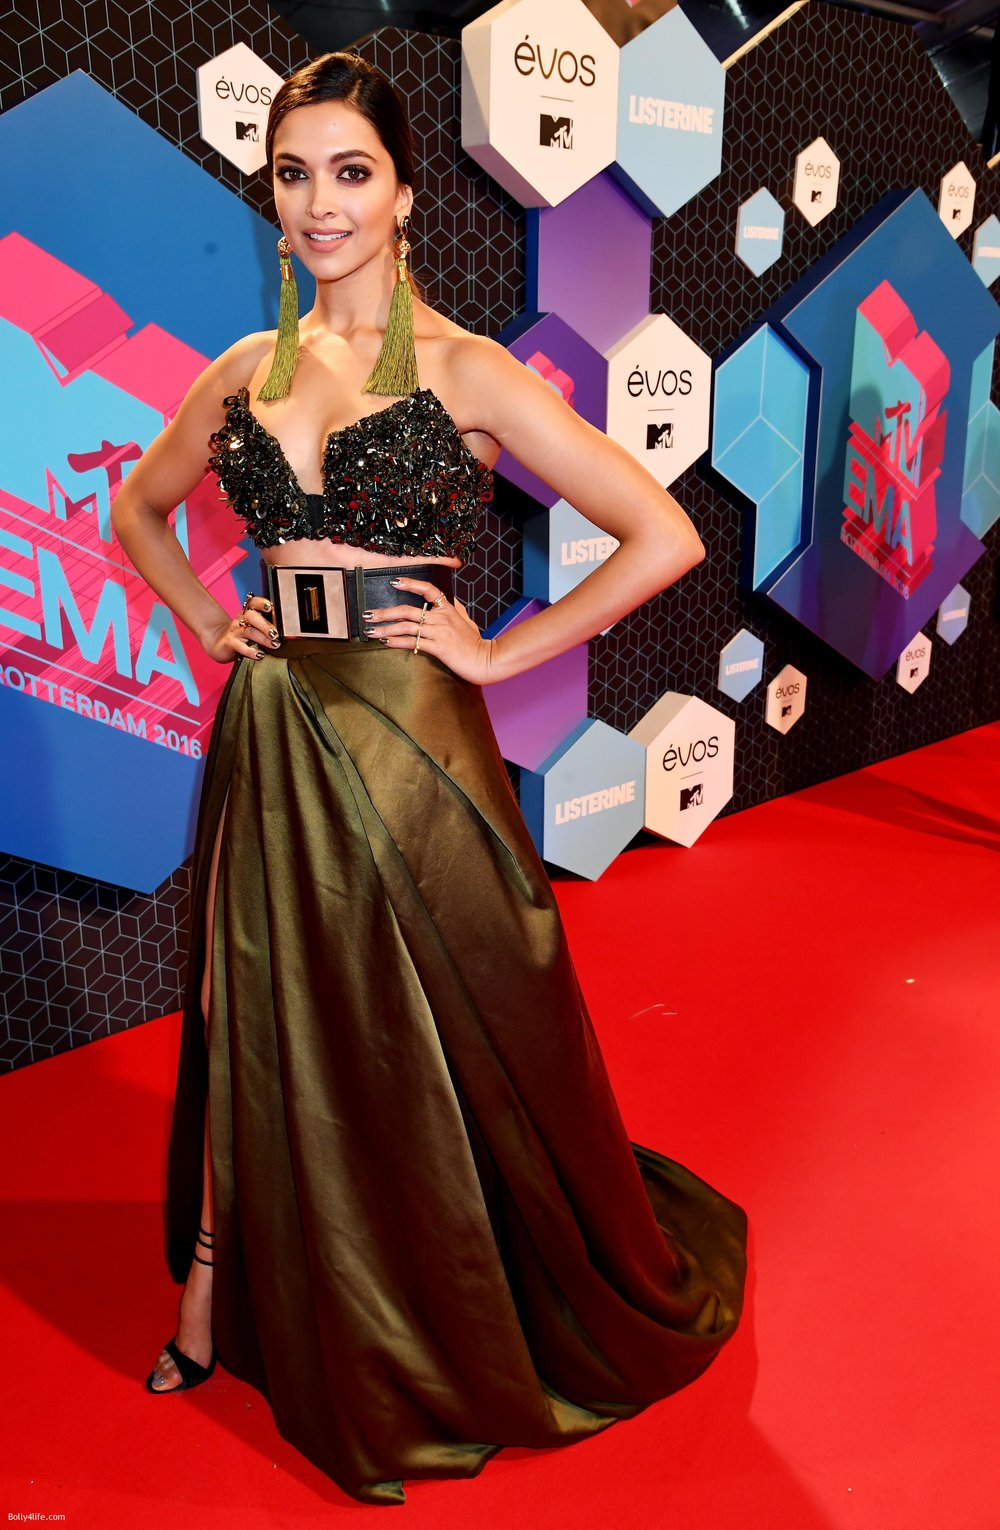 Deepika-Padukone-at-MTV-EMA-2016-Red-carpet-on-6th-Oct-2016-11.jpg